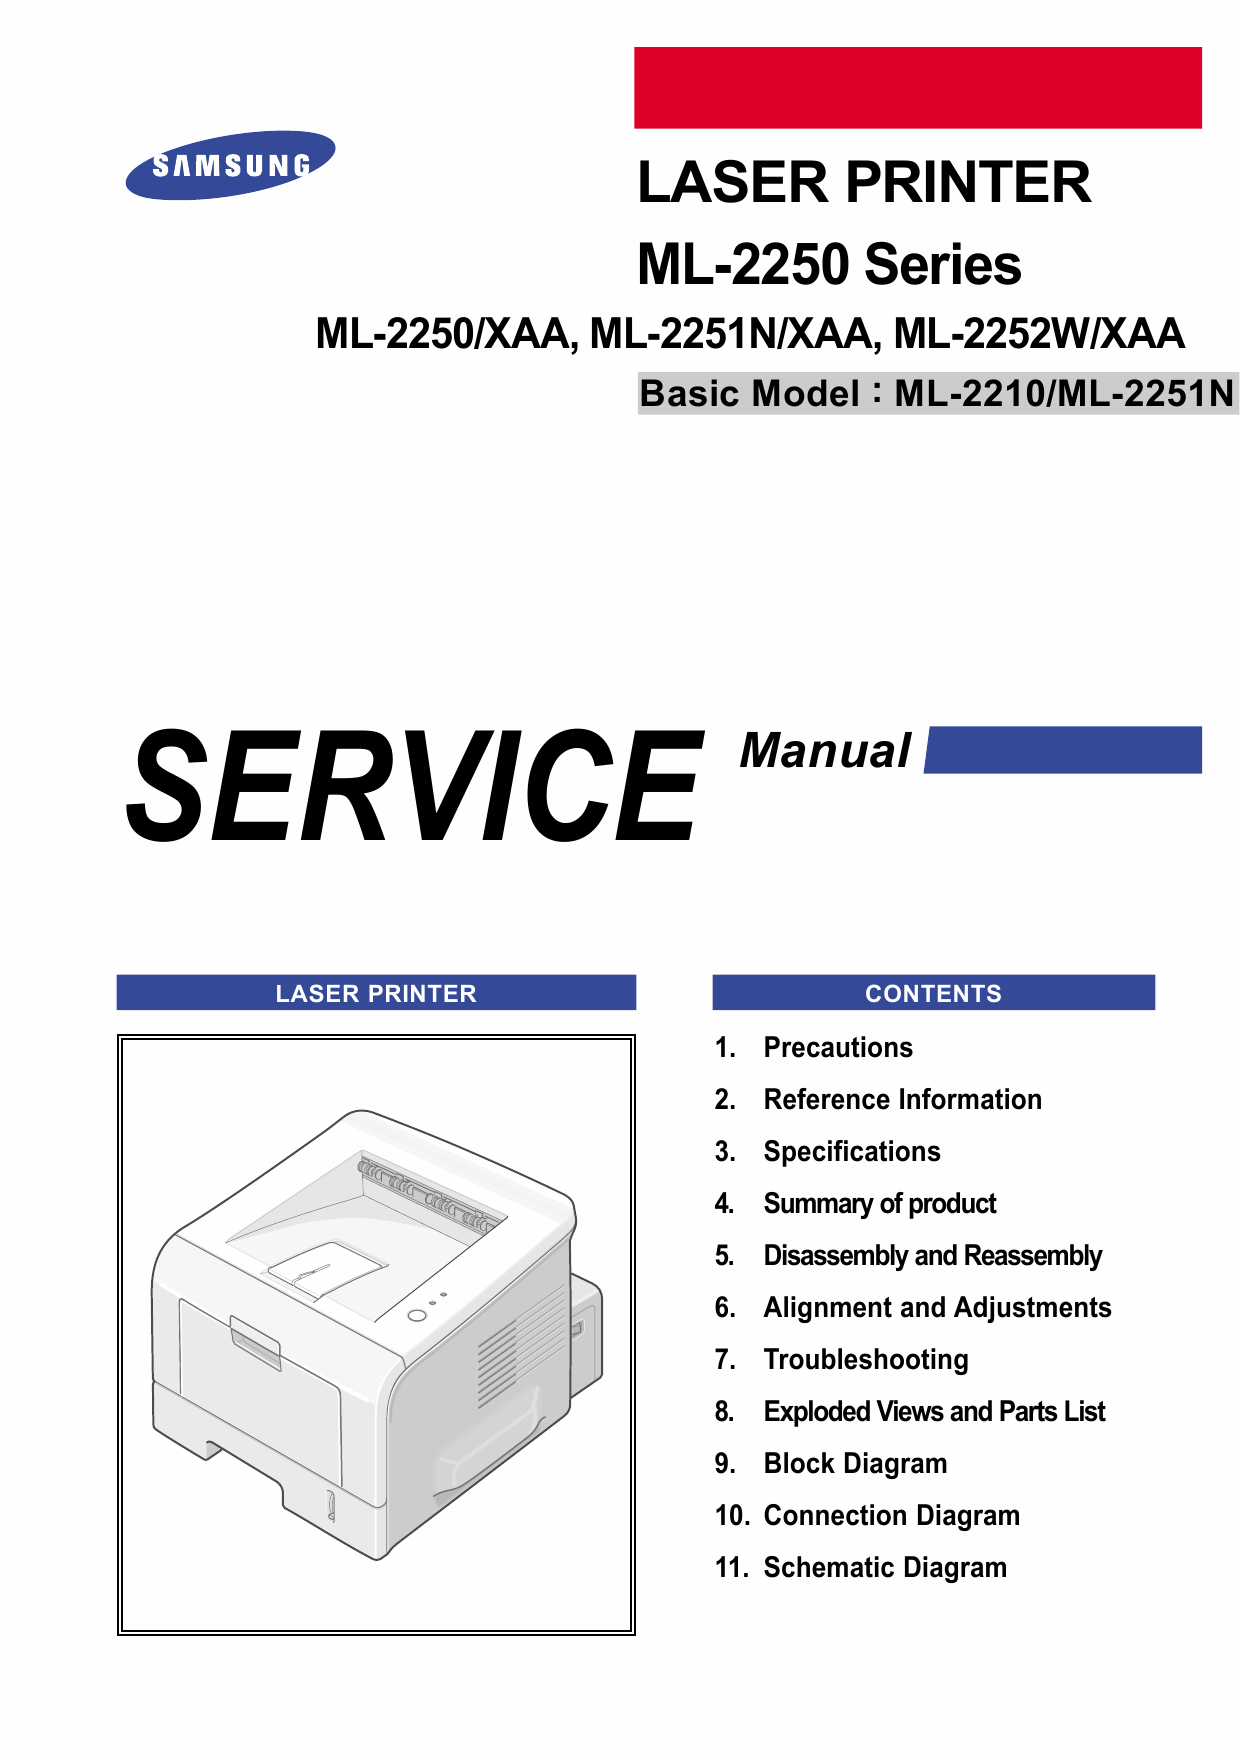 Samsung Laser-Printer ML-2250 2251N 2252W Parts and Service Manual-1